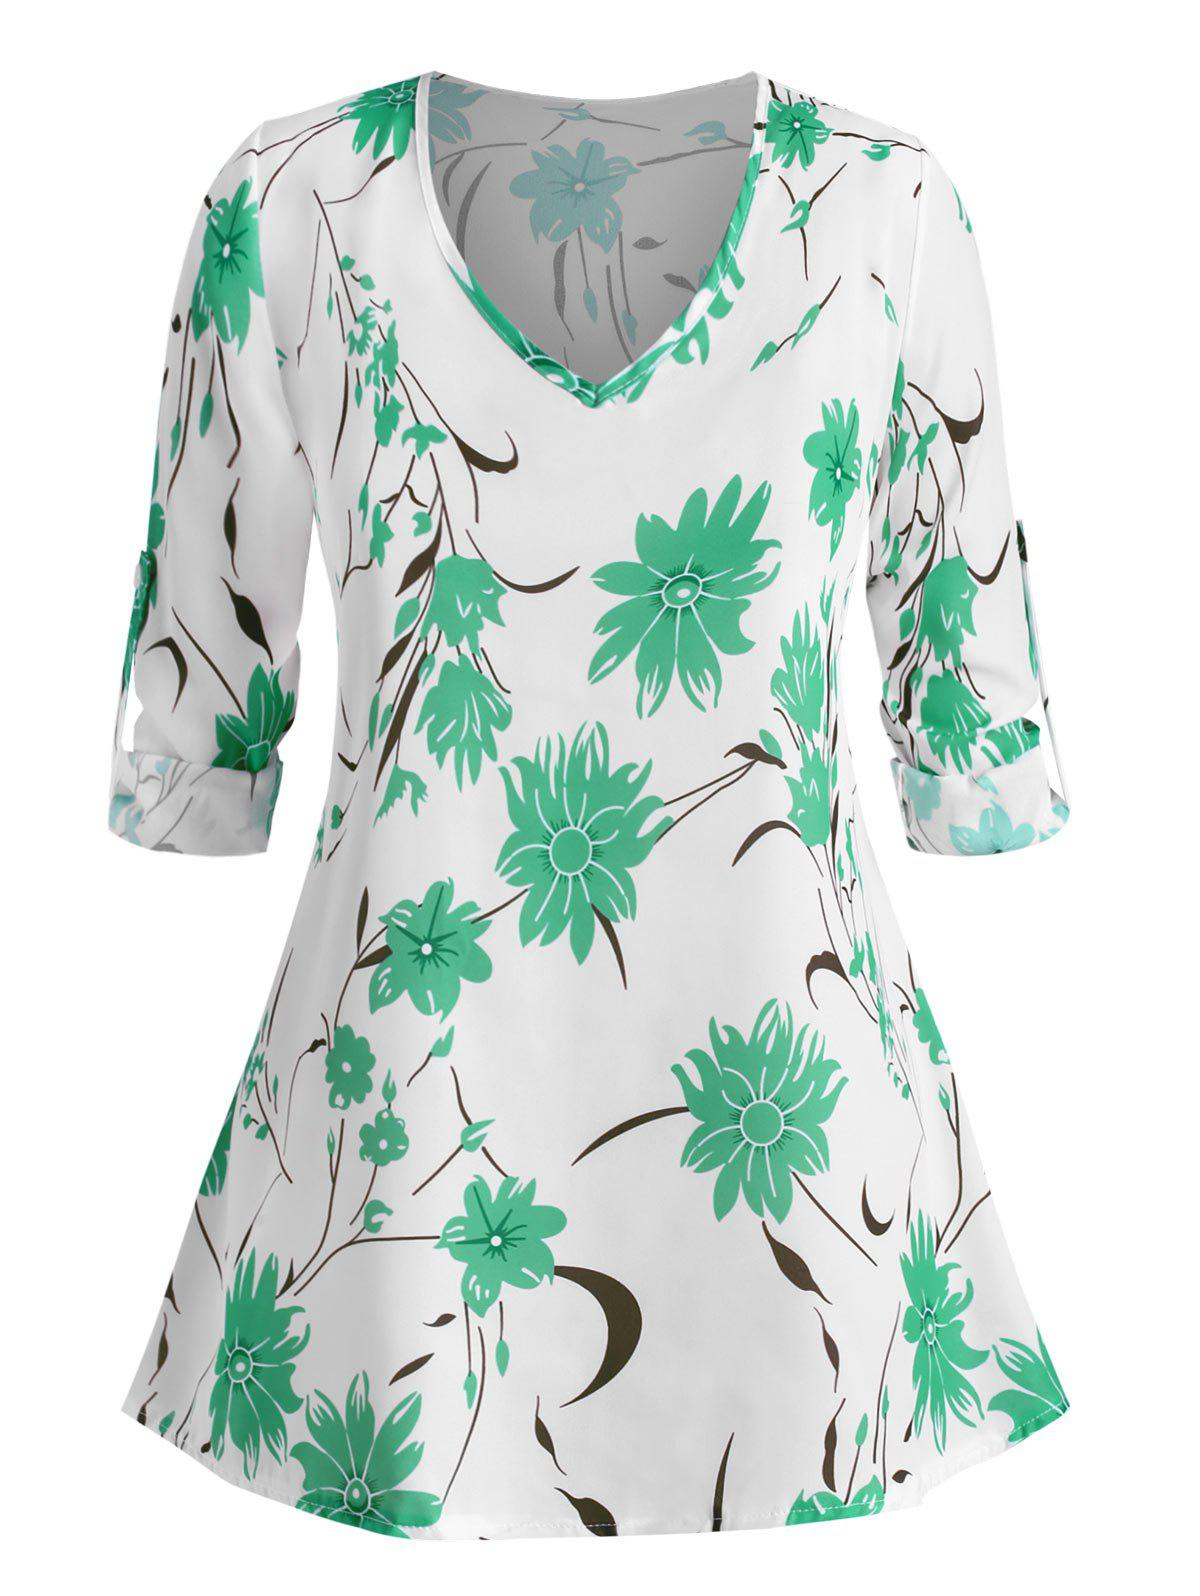 Plus Size Roll Up Sleeve Floral Printed Blouse - GREEN XL